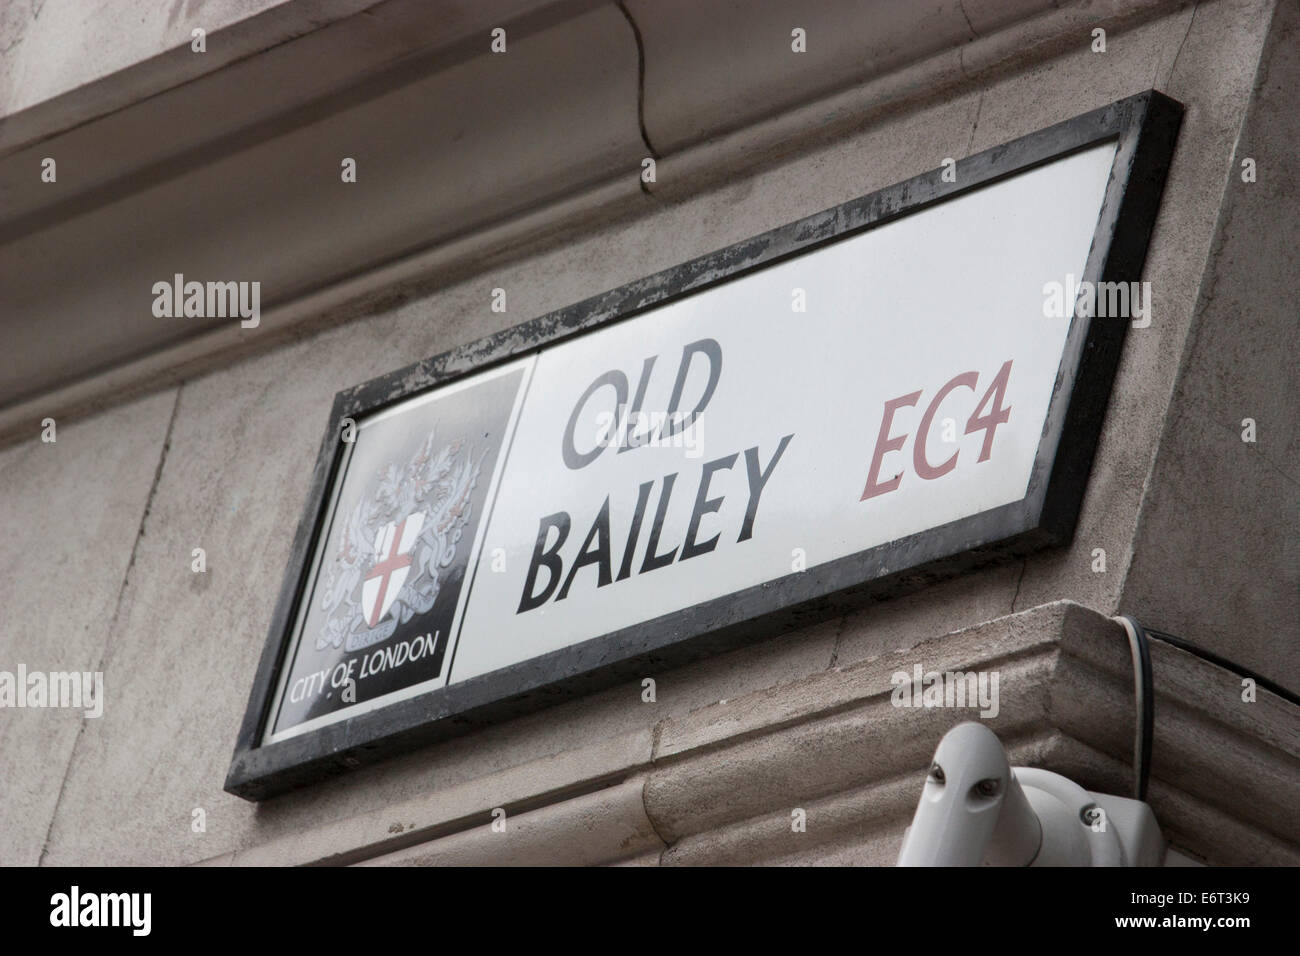 Old Bailey, Street sign, London - Stock Image